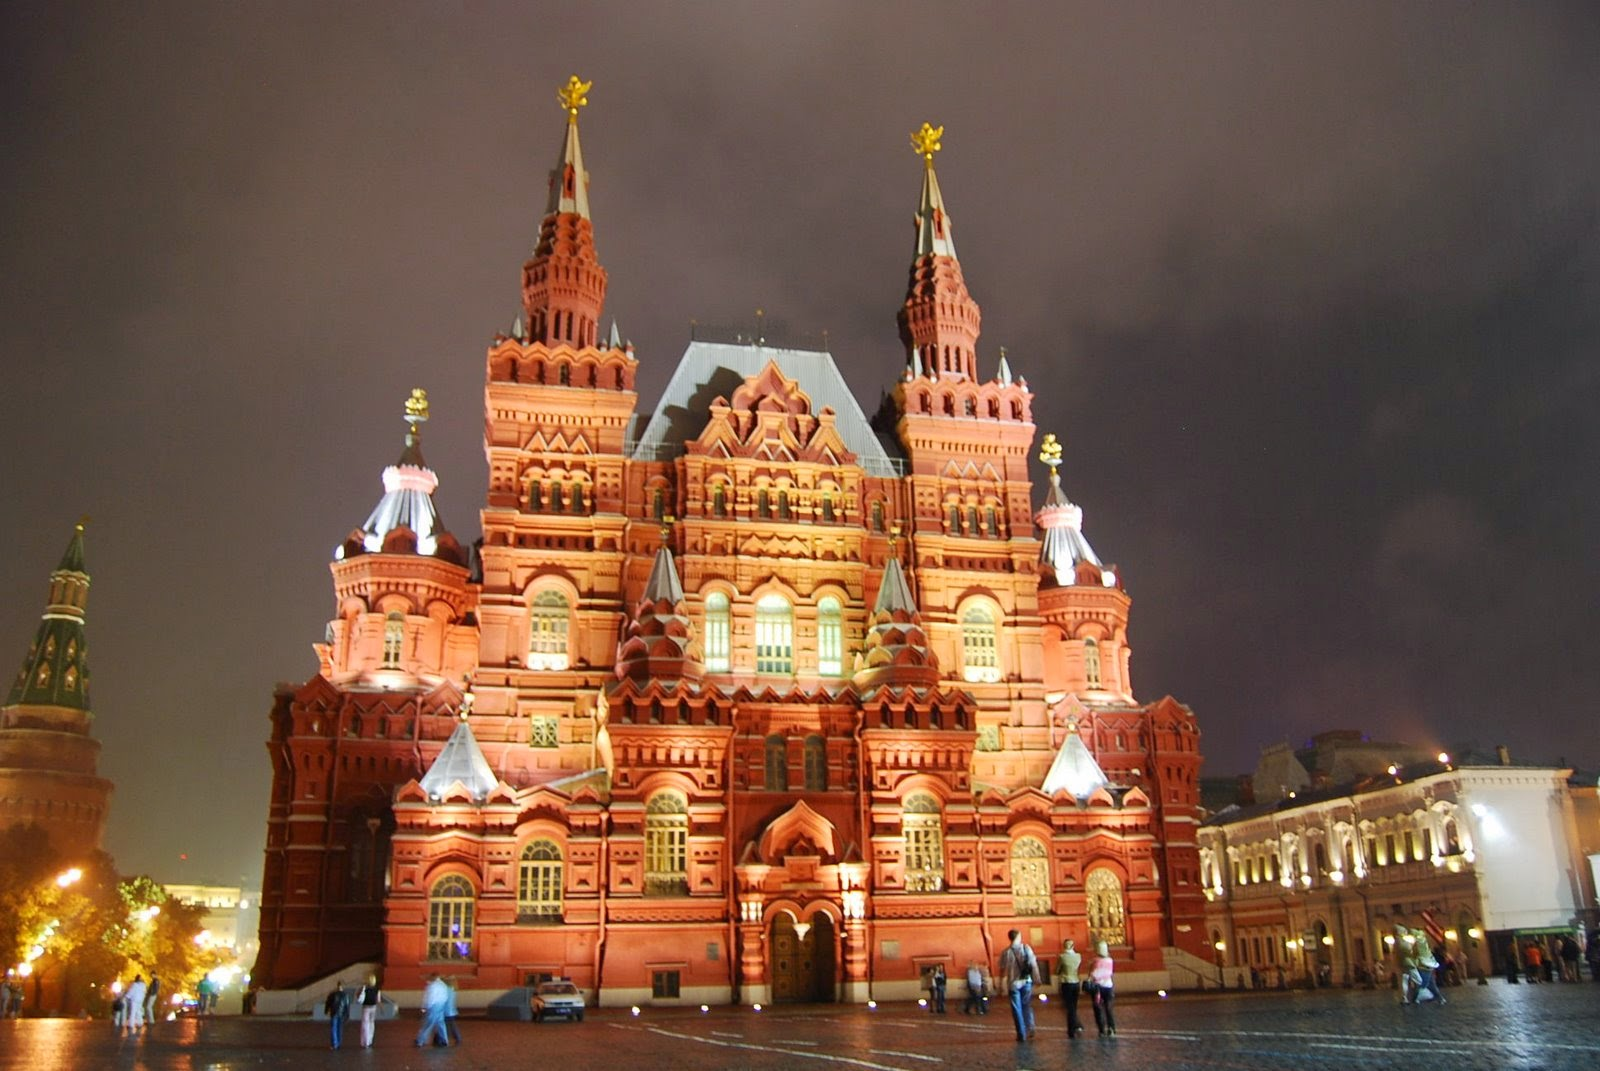 Sudamericanismos Interesting Things About Russia Http - 10 interesting facts about russia